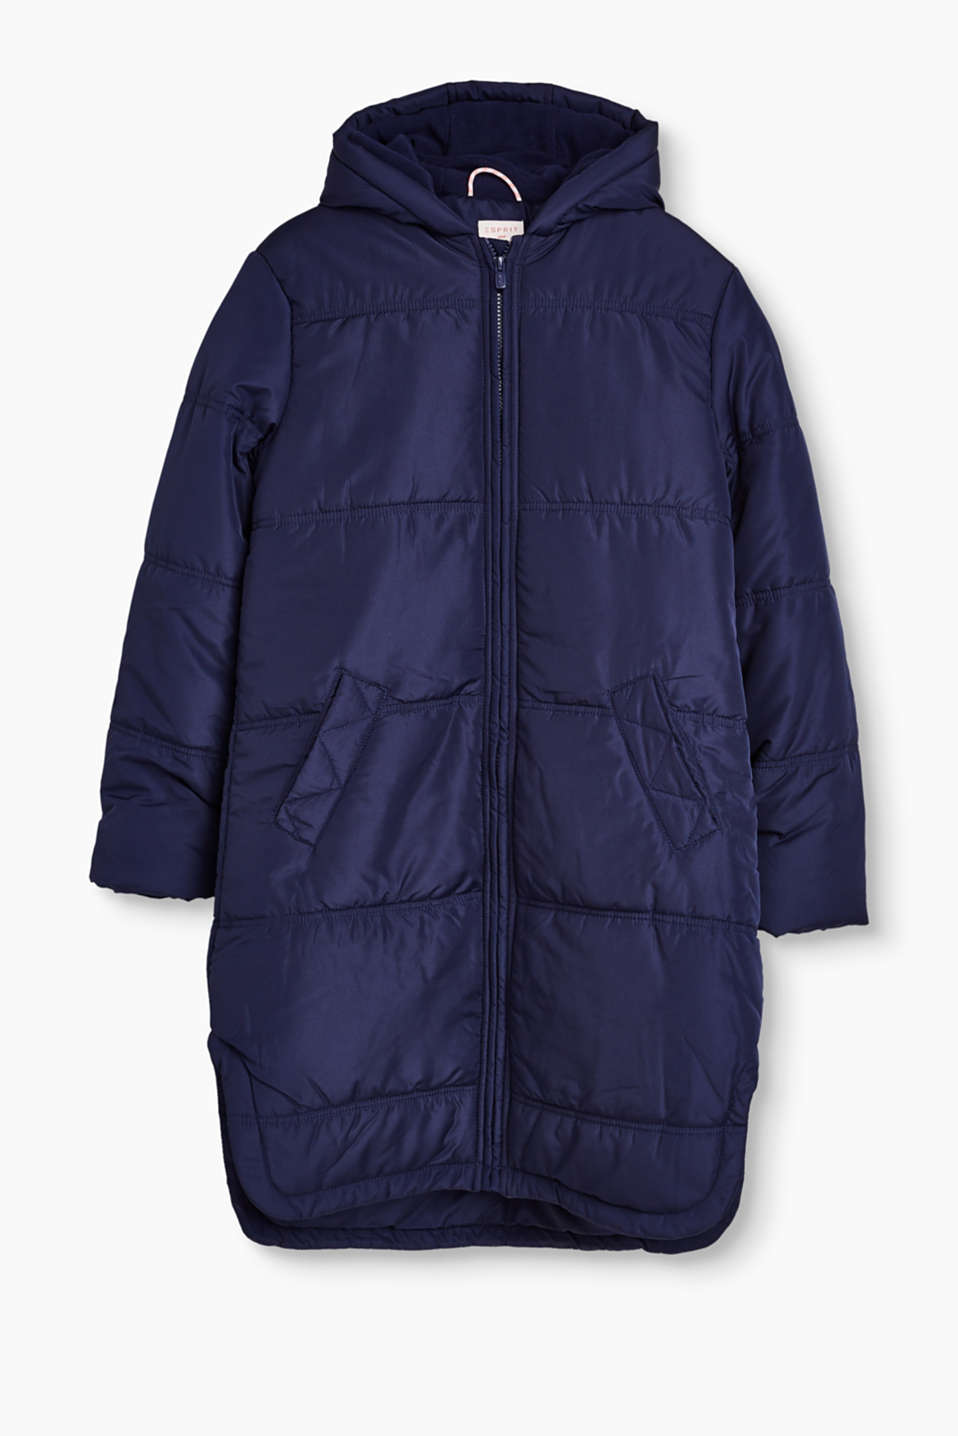 All-weather coat for kids, with fleece lining and hood